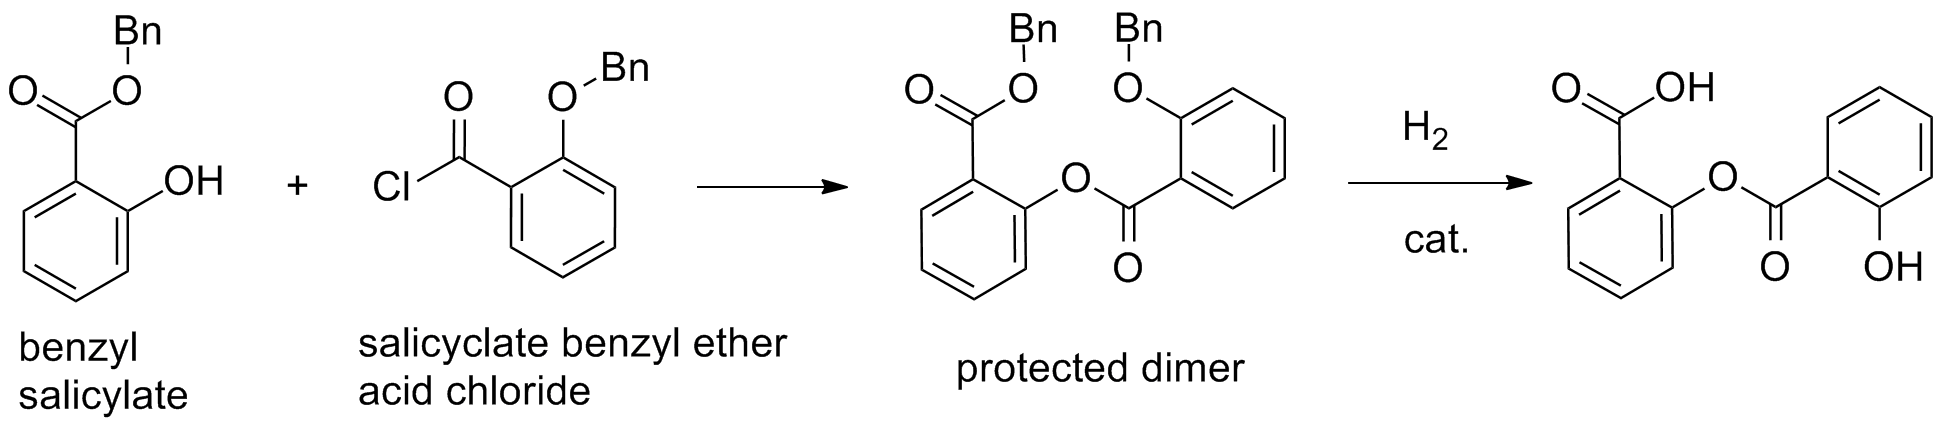 Salsalate_synthesis.png